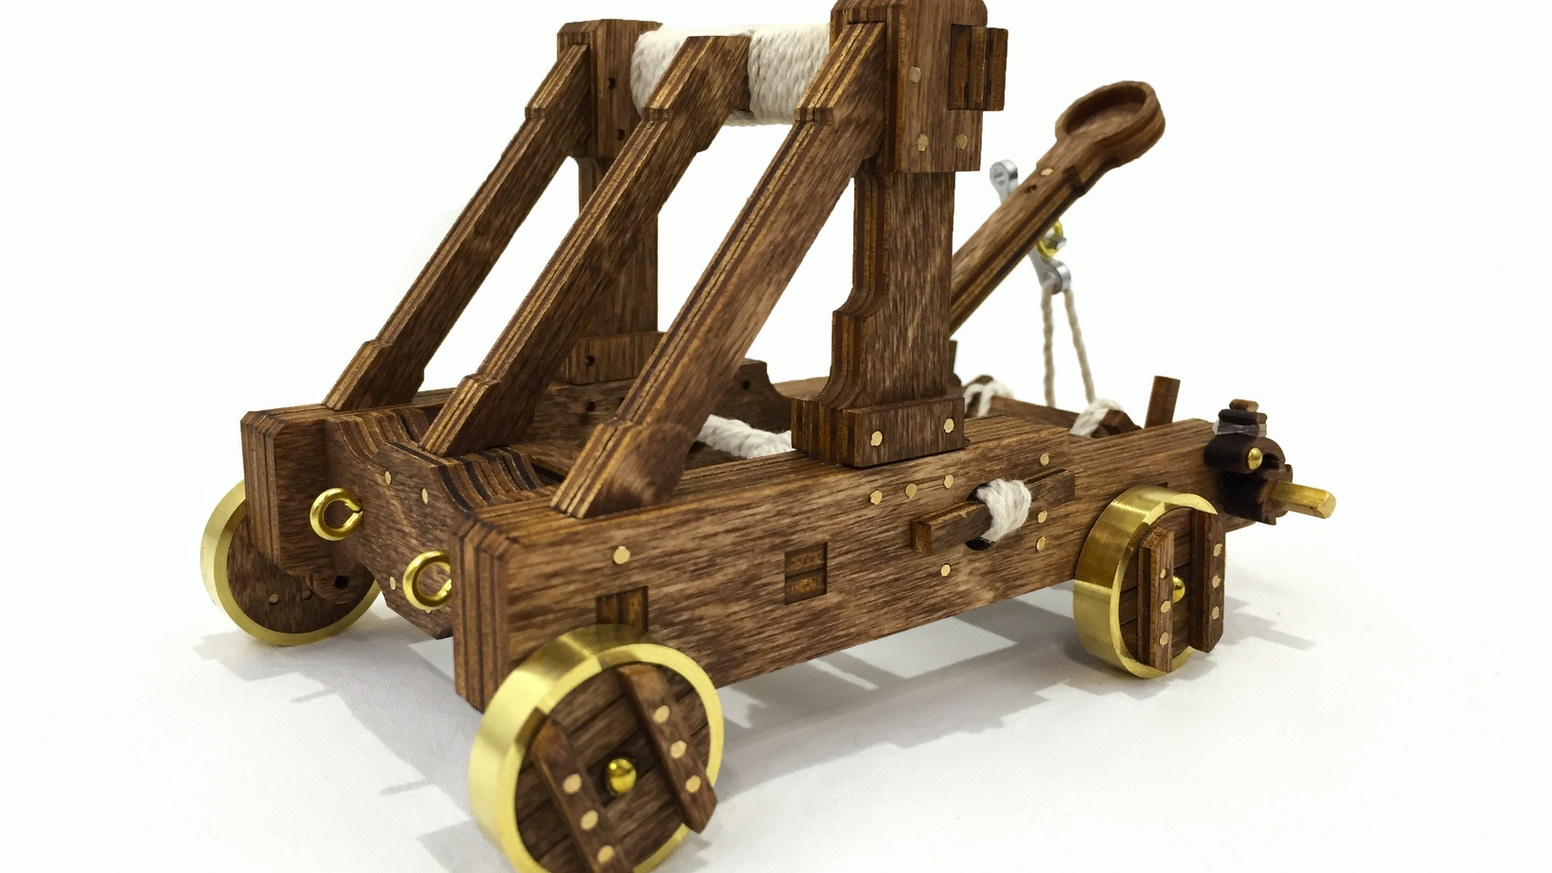 Catapult Kits - The ultimate desktop toy (Trebuchets Added!)